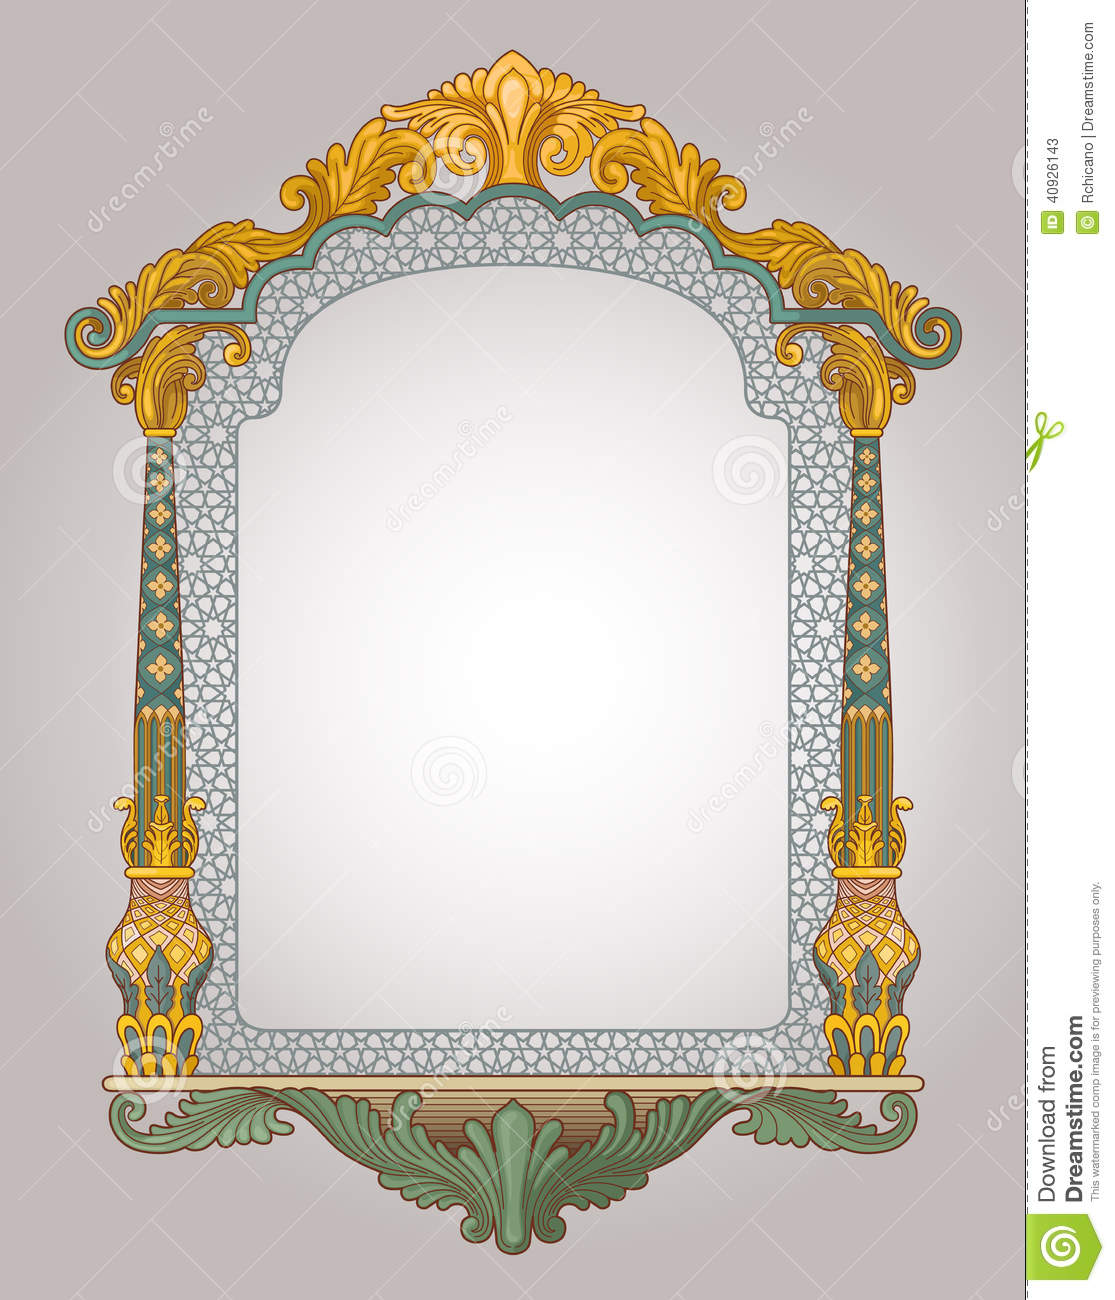 Decorative window frame stock illustration image of arch for Window design vector